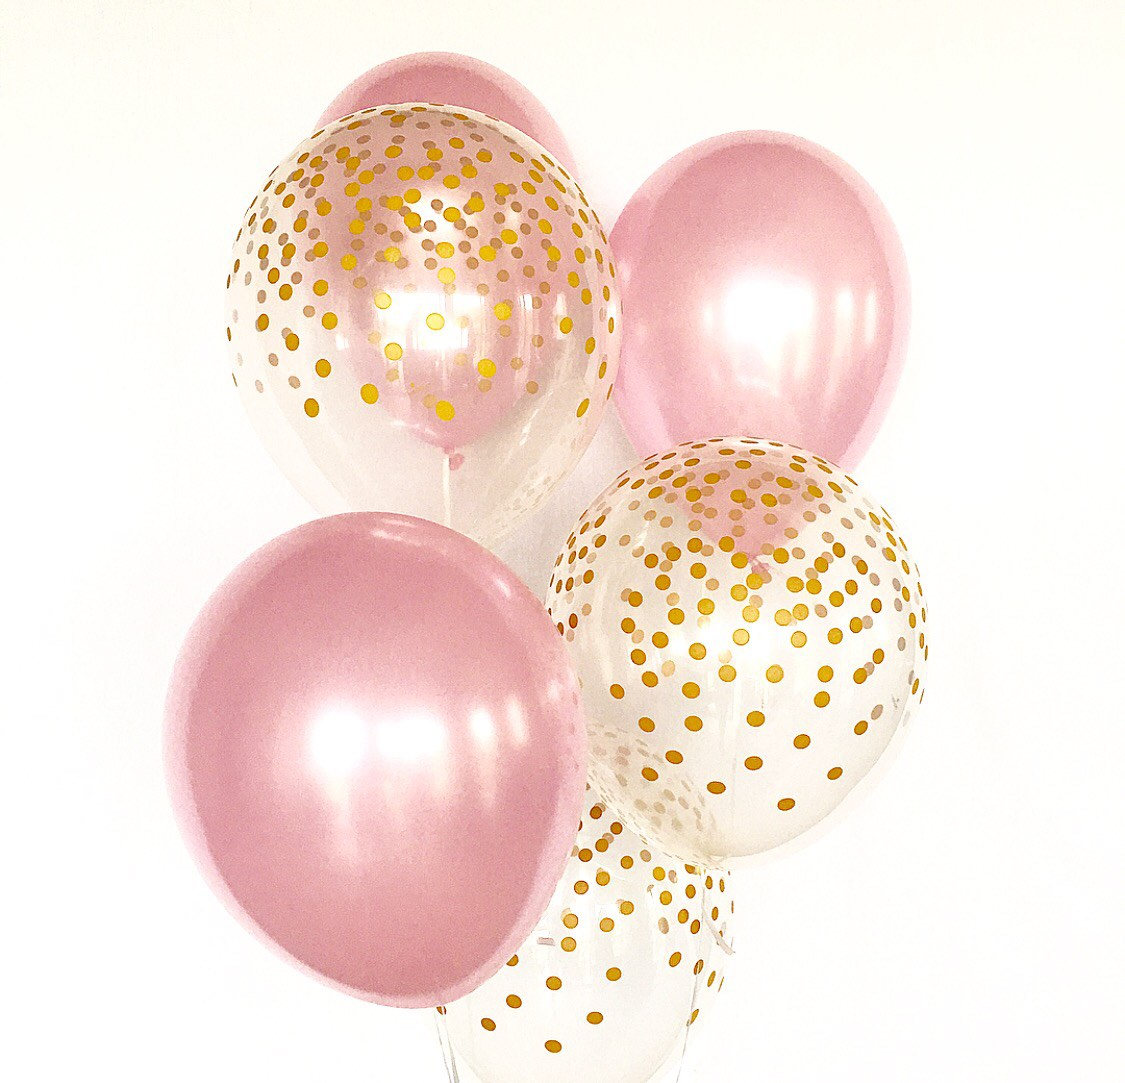 Rose Gold Balloons Clipart.